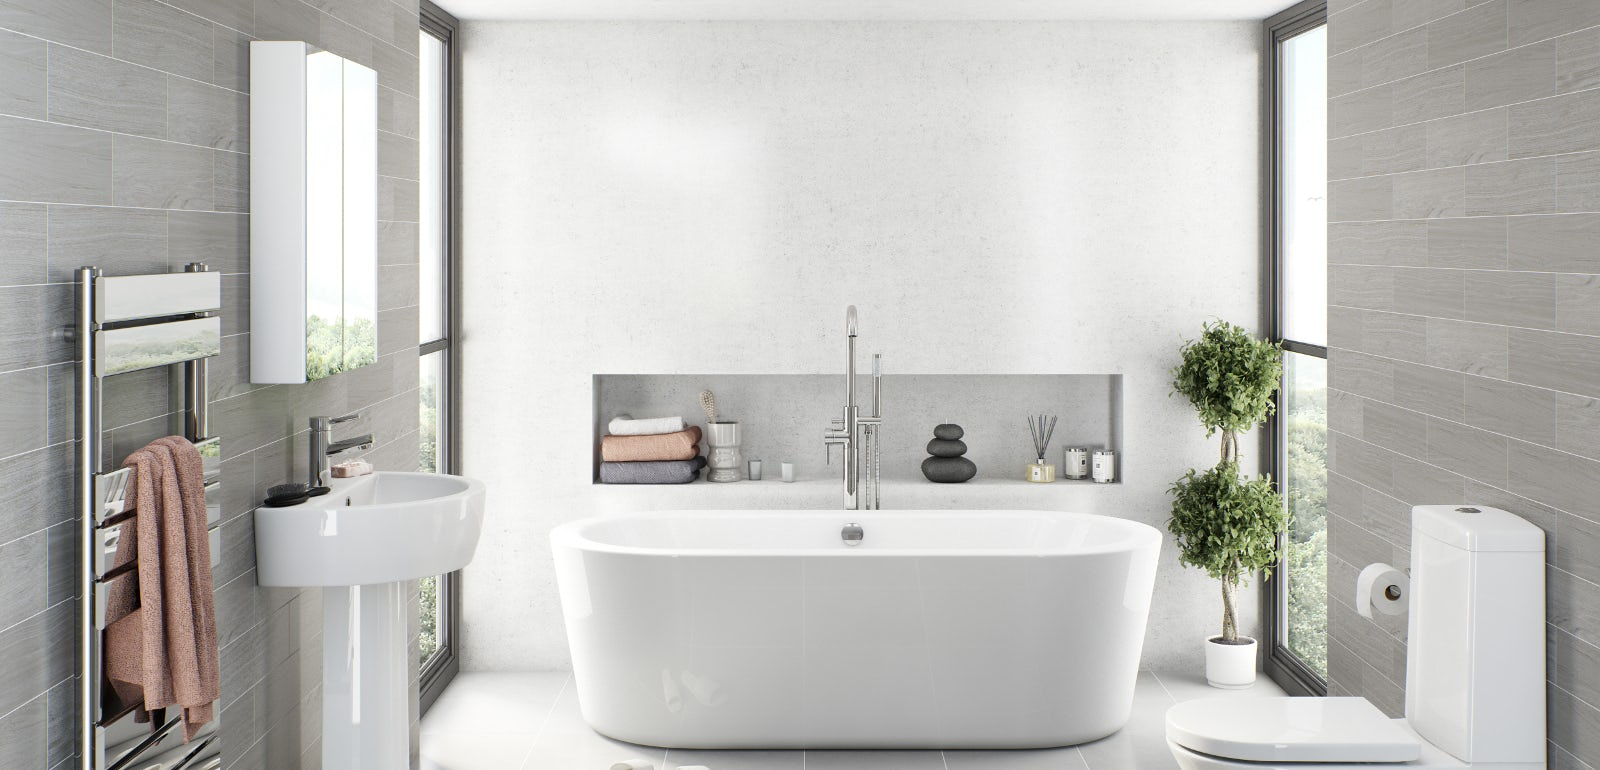 How much should you pay to have a bathroom fitted